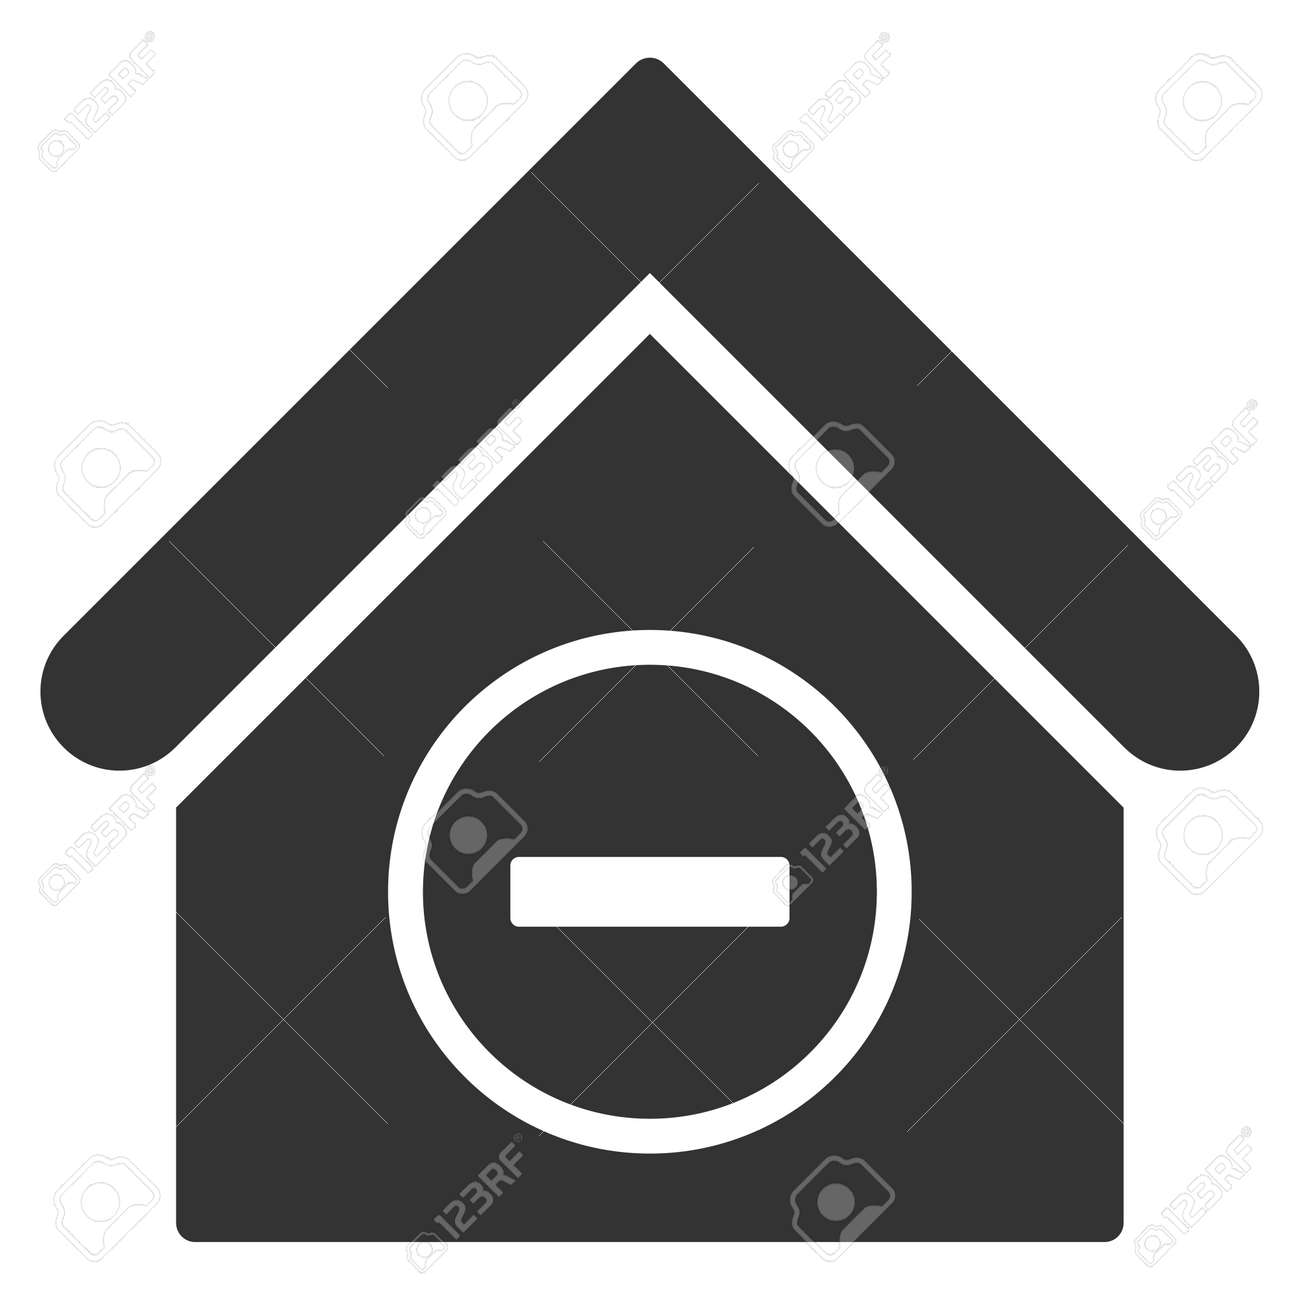 Remove building icon vector style is flat iconic symbol gray remove building icon vector style is flat iconic symbol gray color white background biocorpaavc